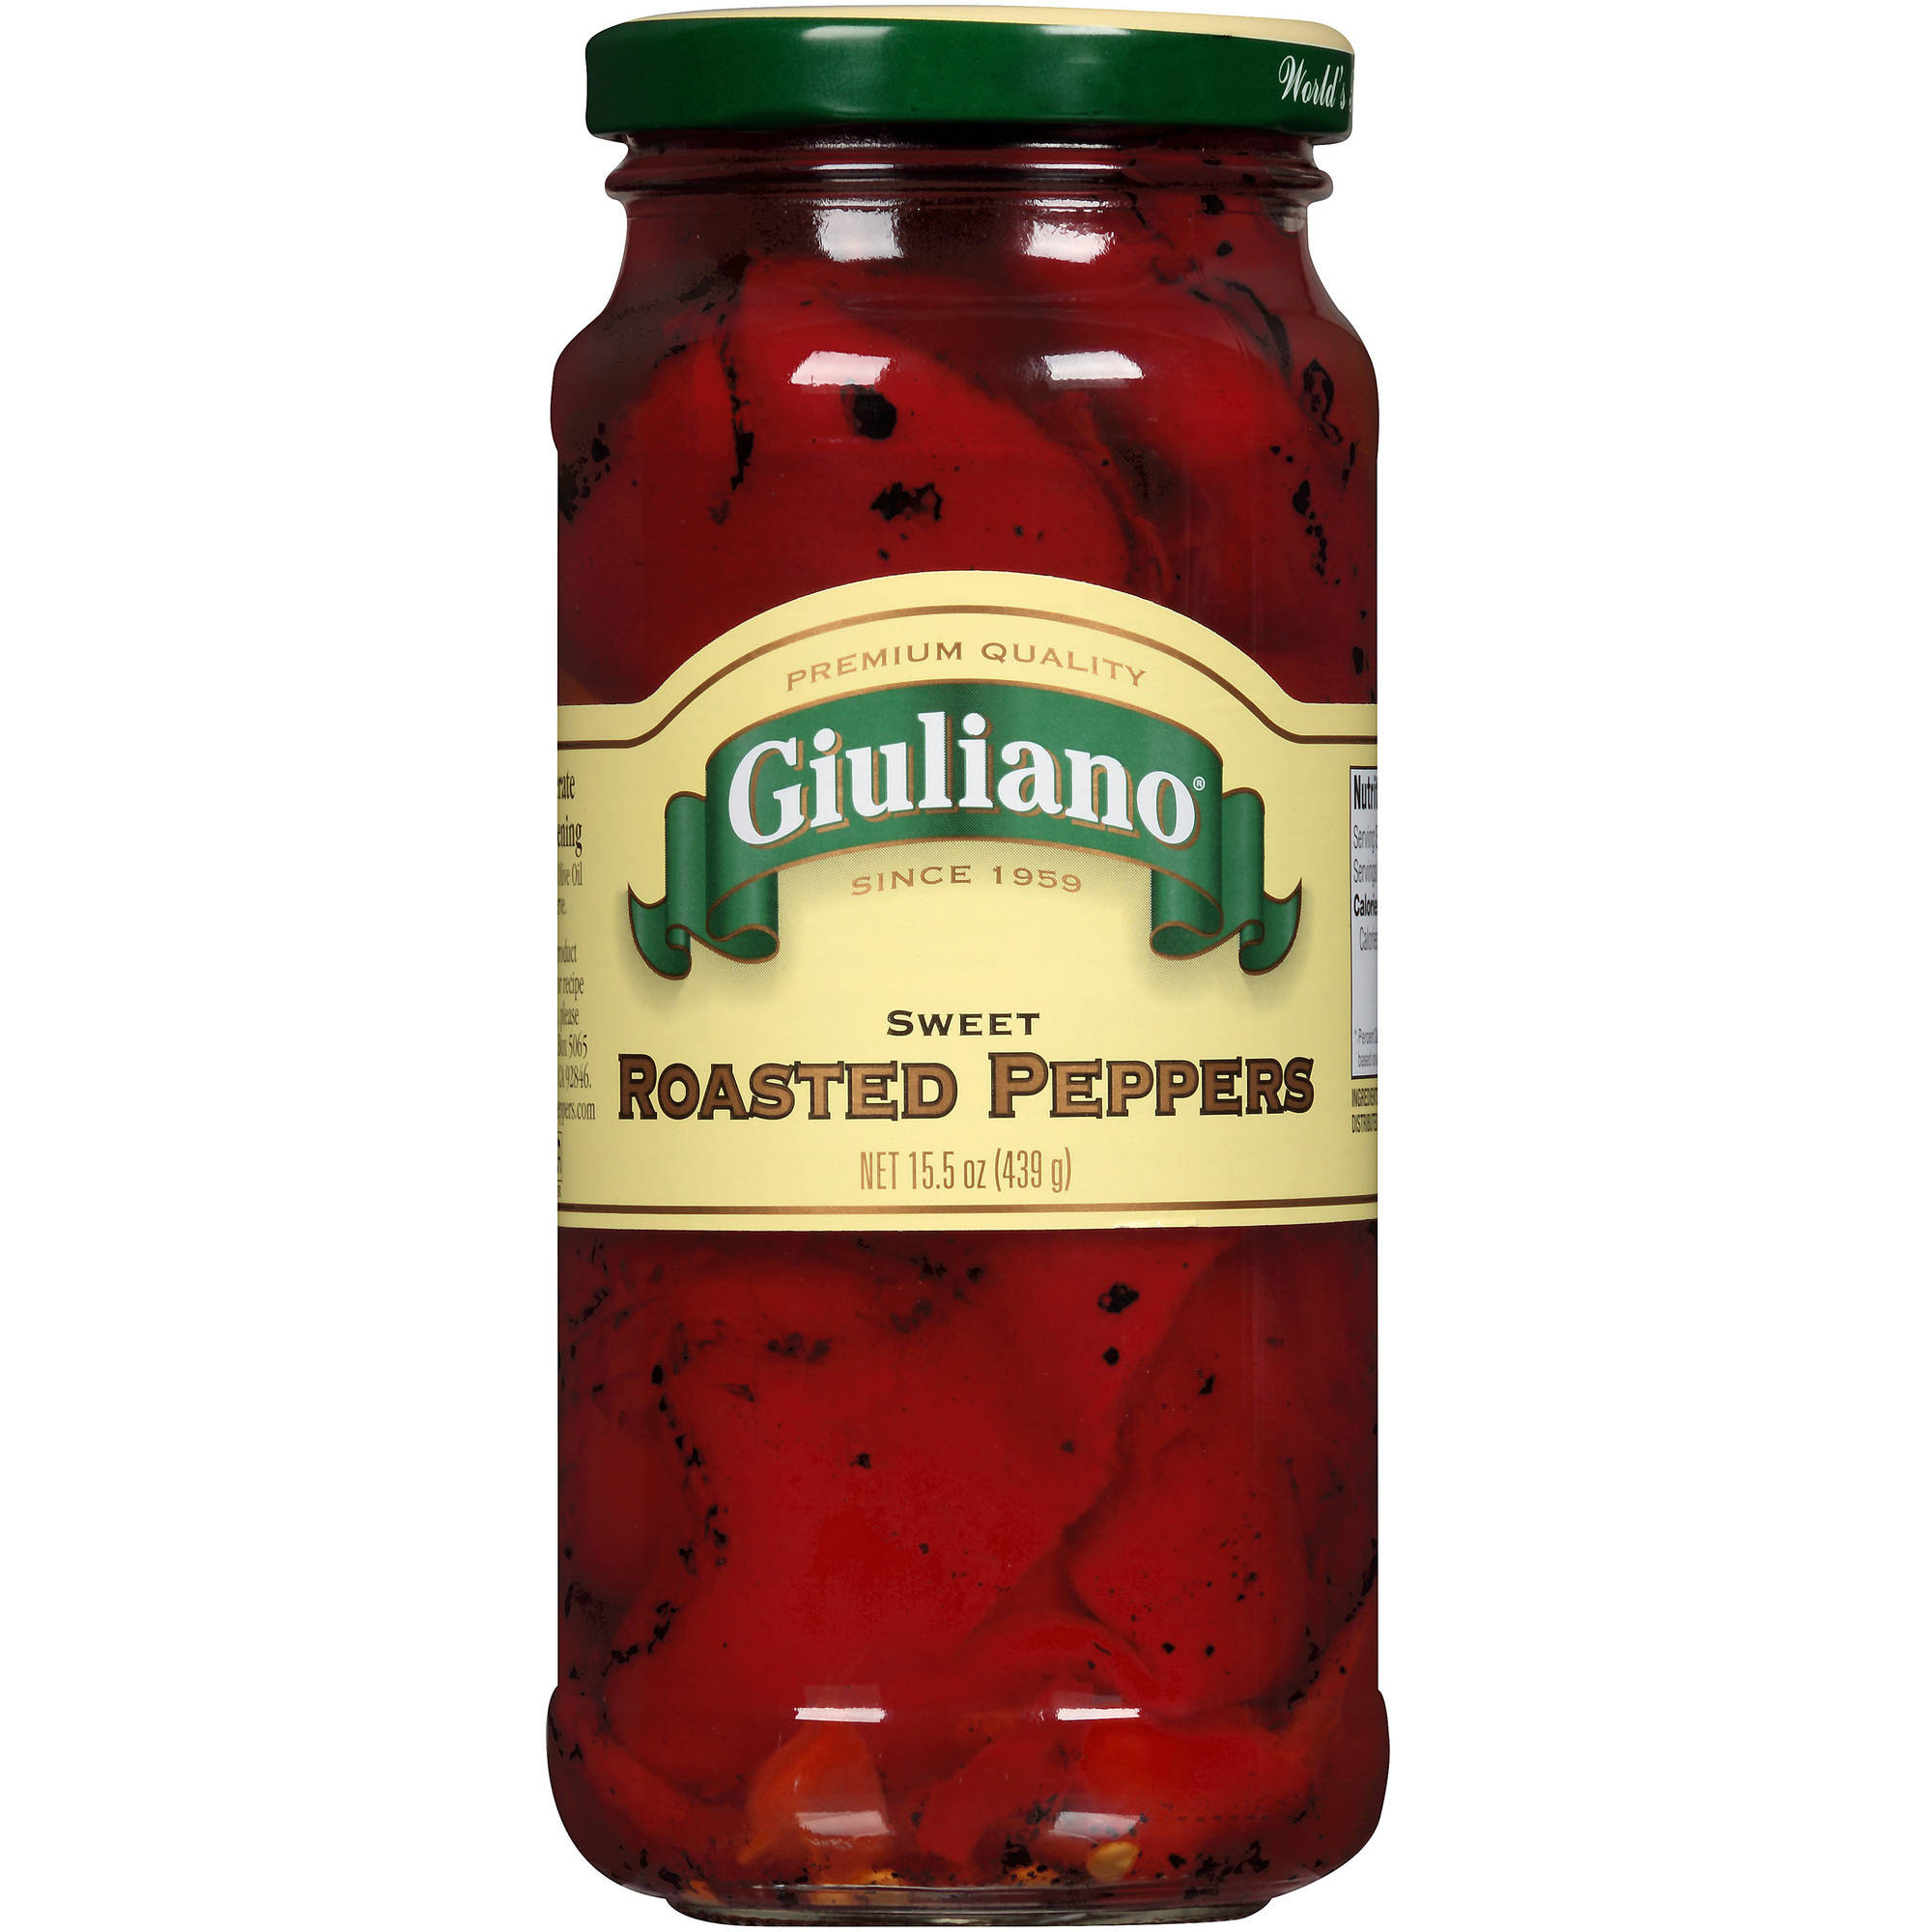 Giuliano Sweet Roasted Peppers, 15.5 oz